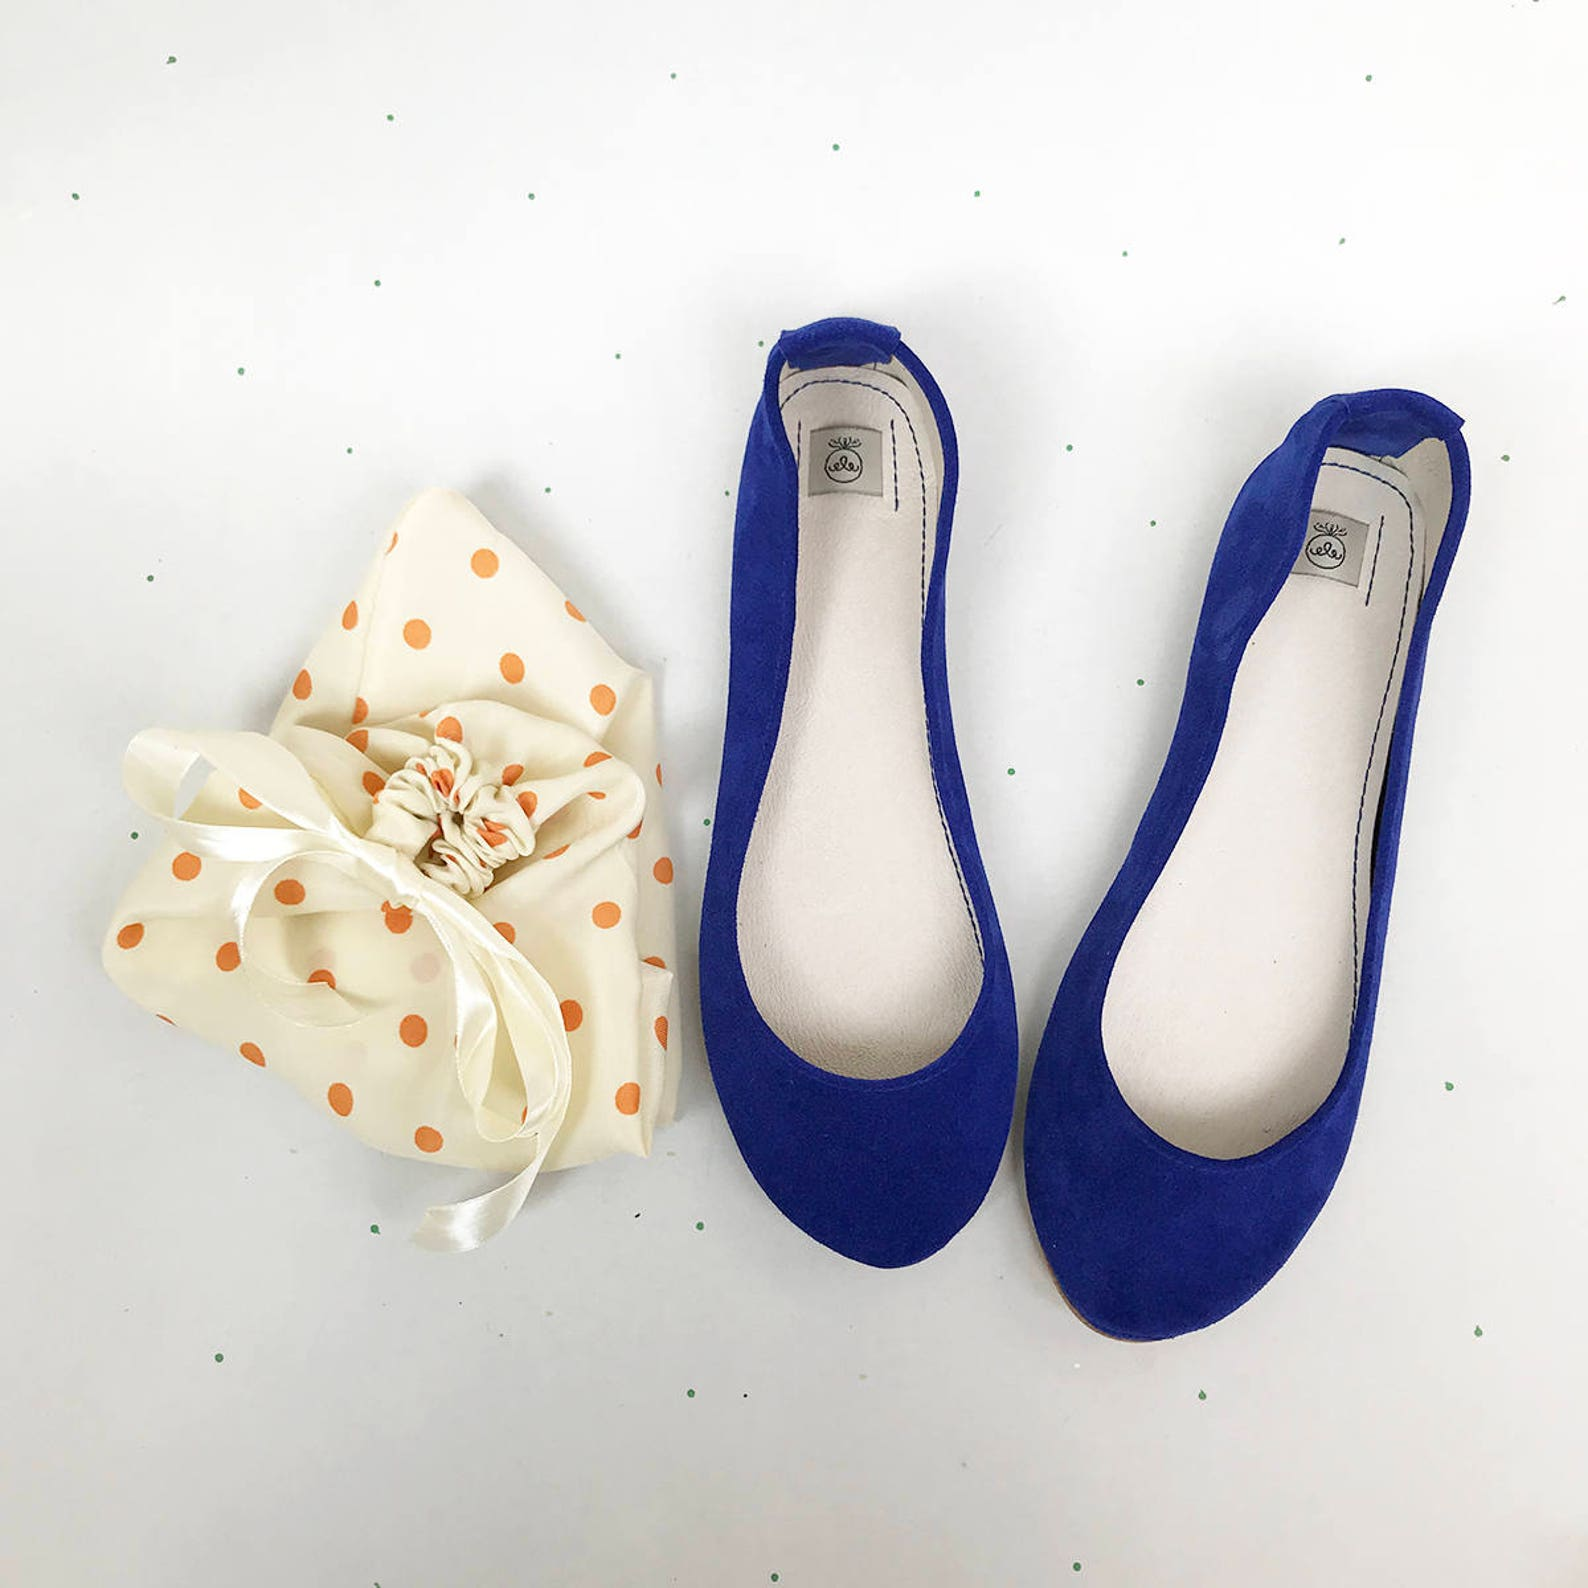 leather ballet flats. bridal shoes. women shoes. low heel wedding shoes. blue flats. italian leather shoe. bridal gift. bridesma